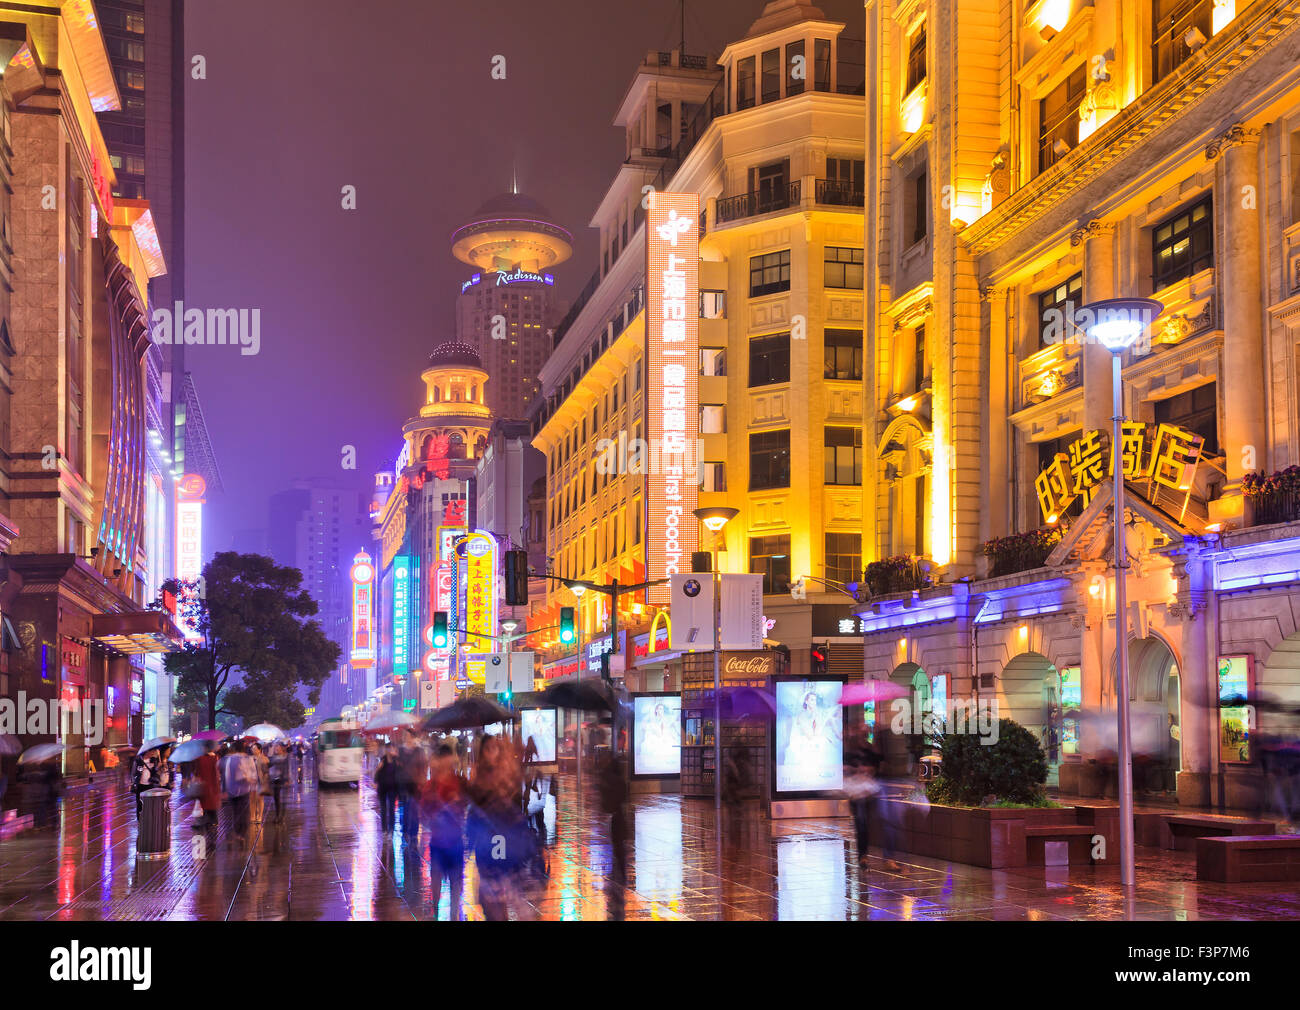 pedestrian walking shopping Nanking road street in Shanghai, China, at night with brightly lit by neon illimination - Stock Image